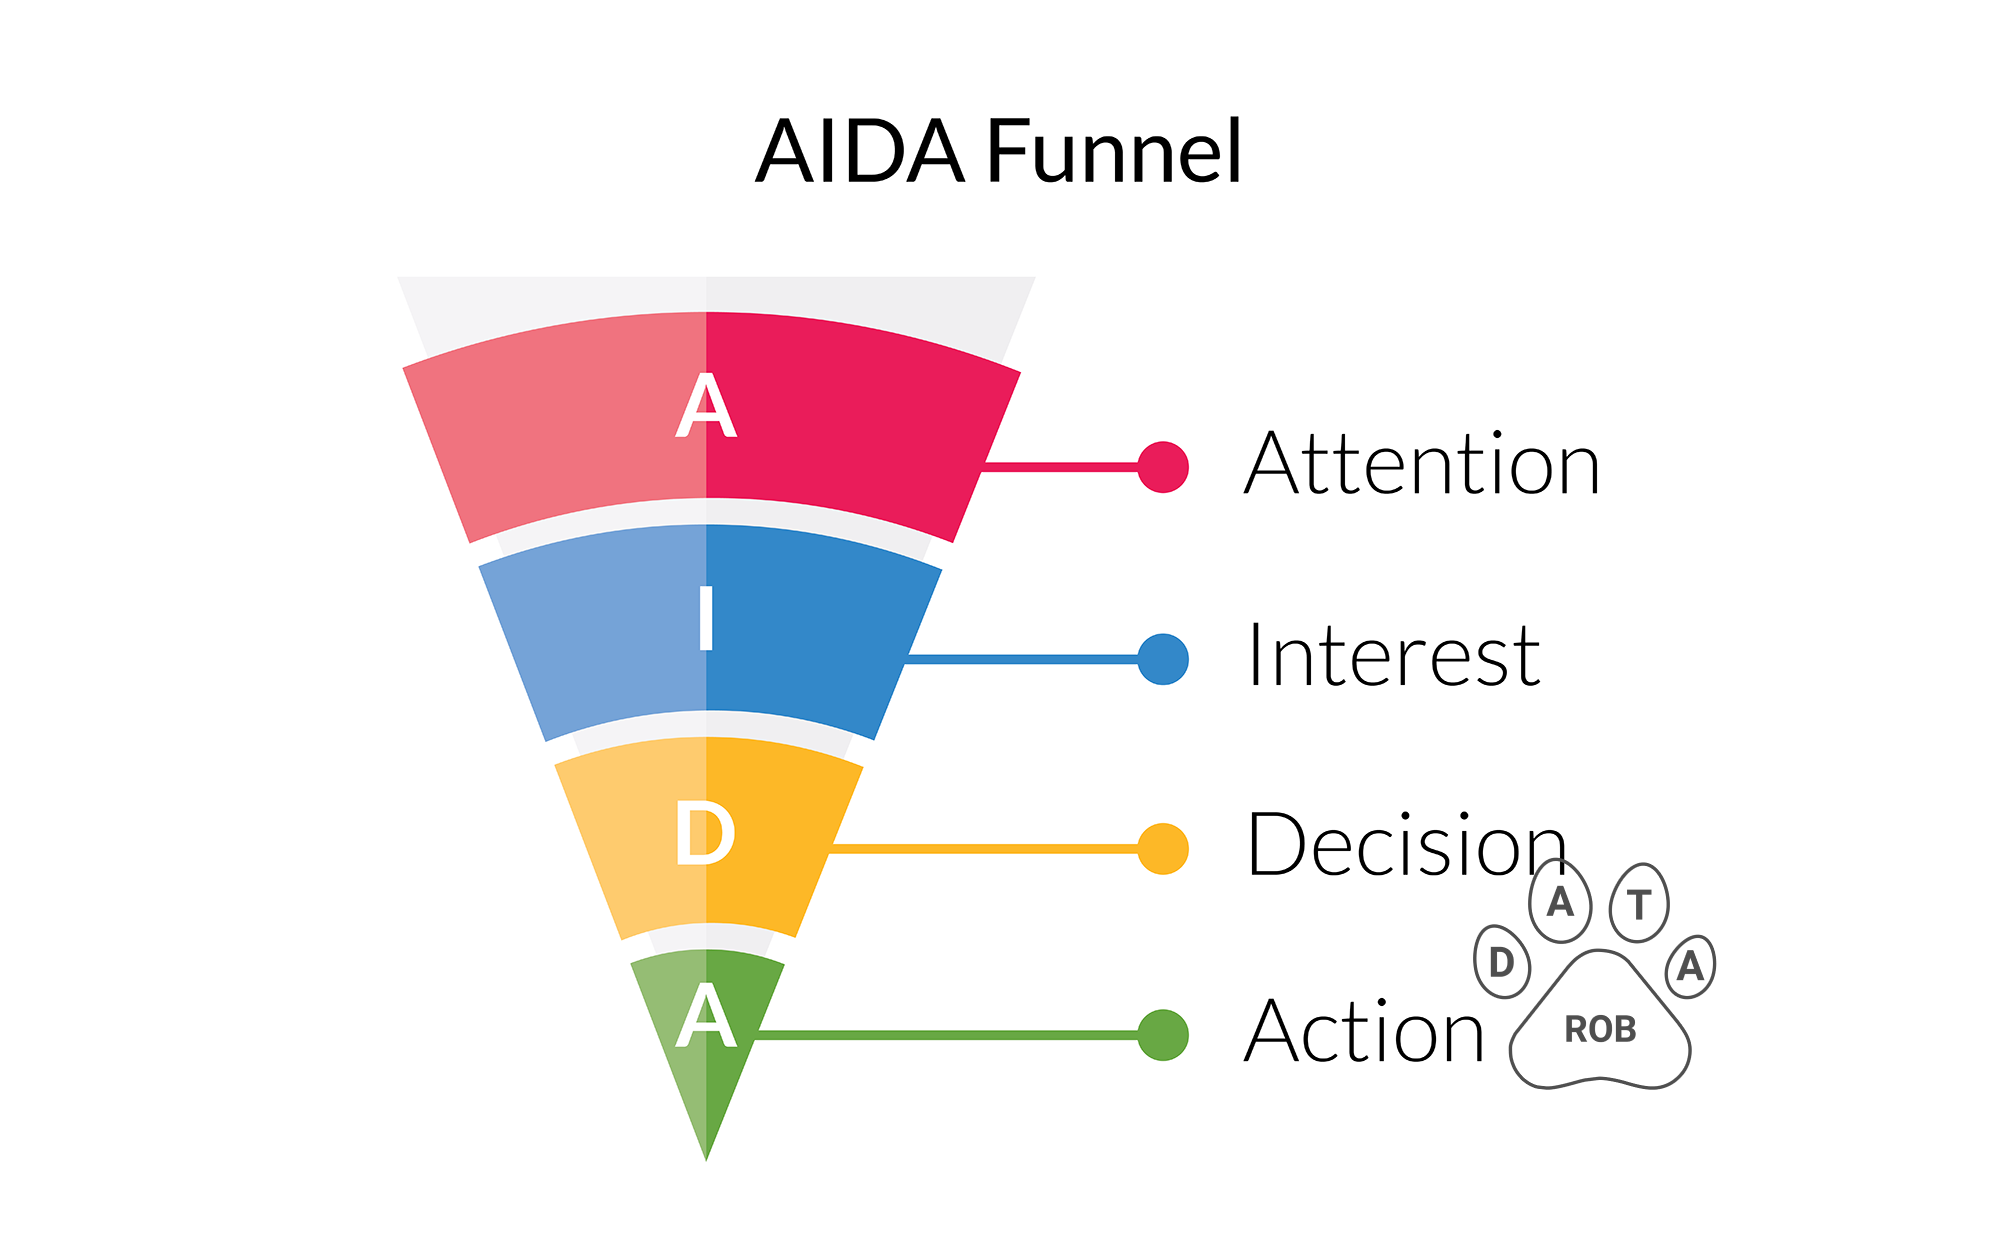 first sales funnel was AIDA